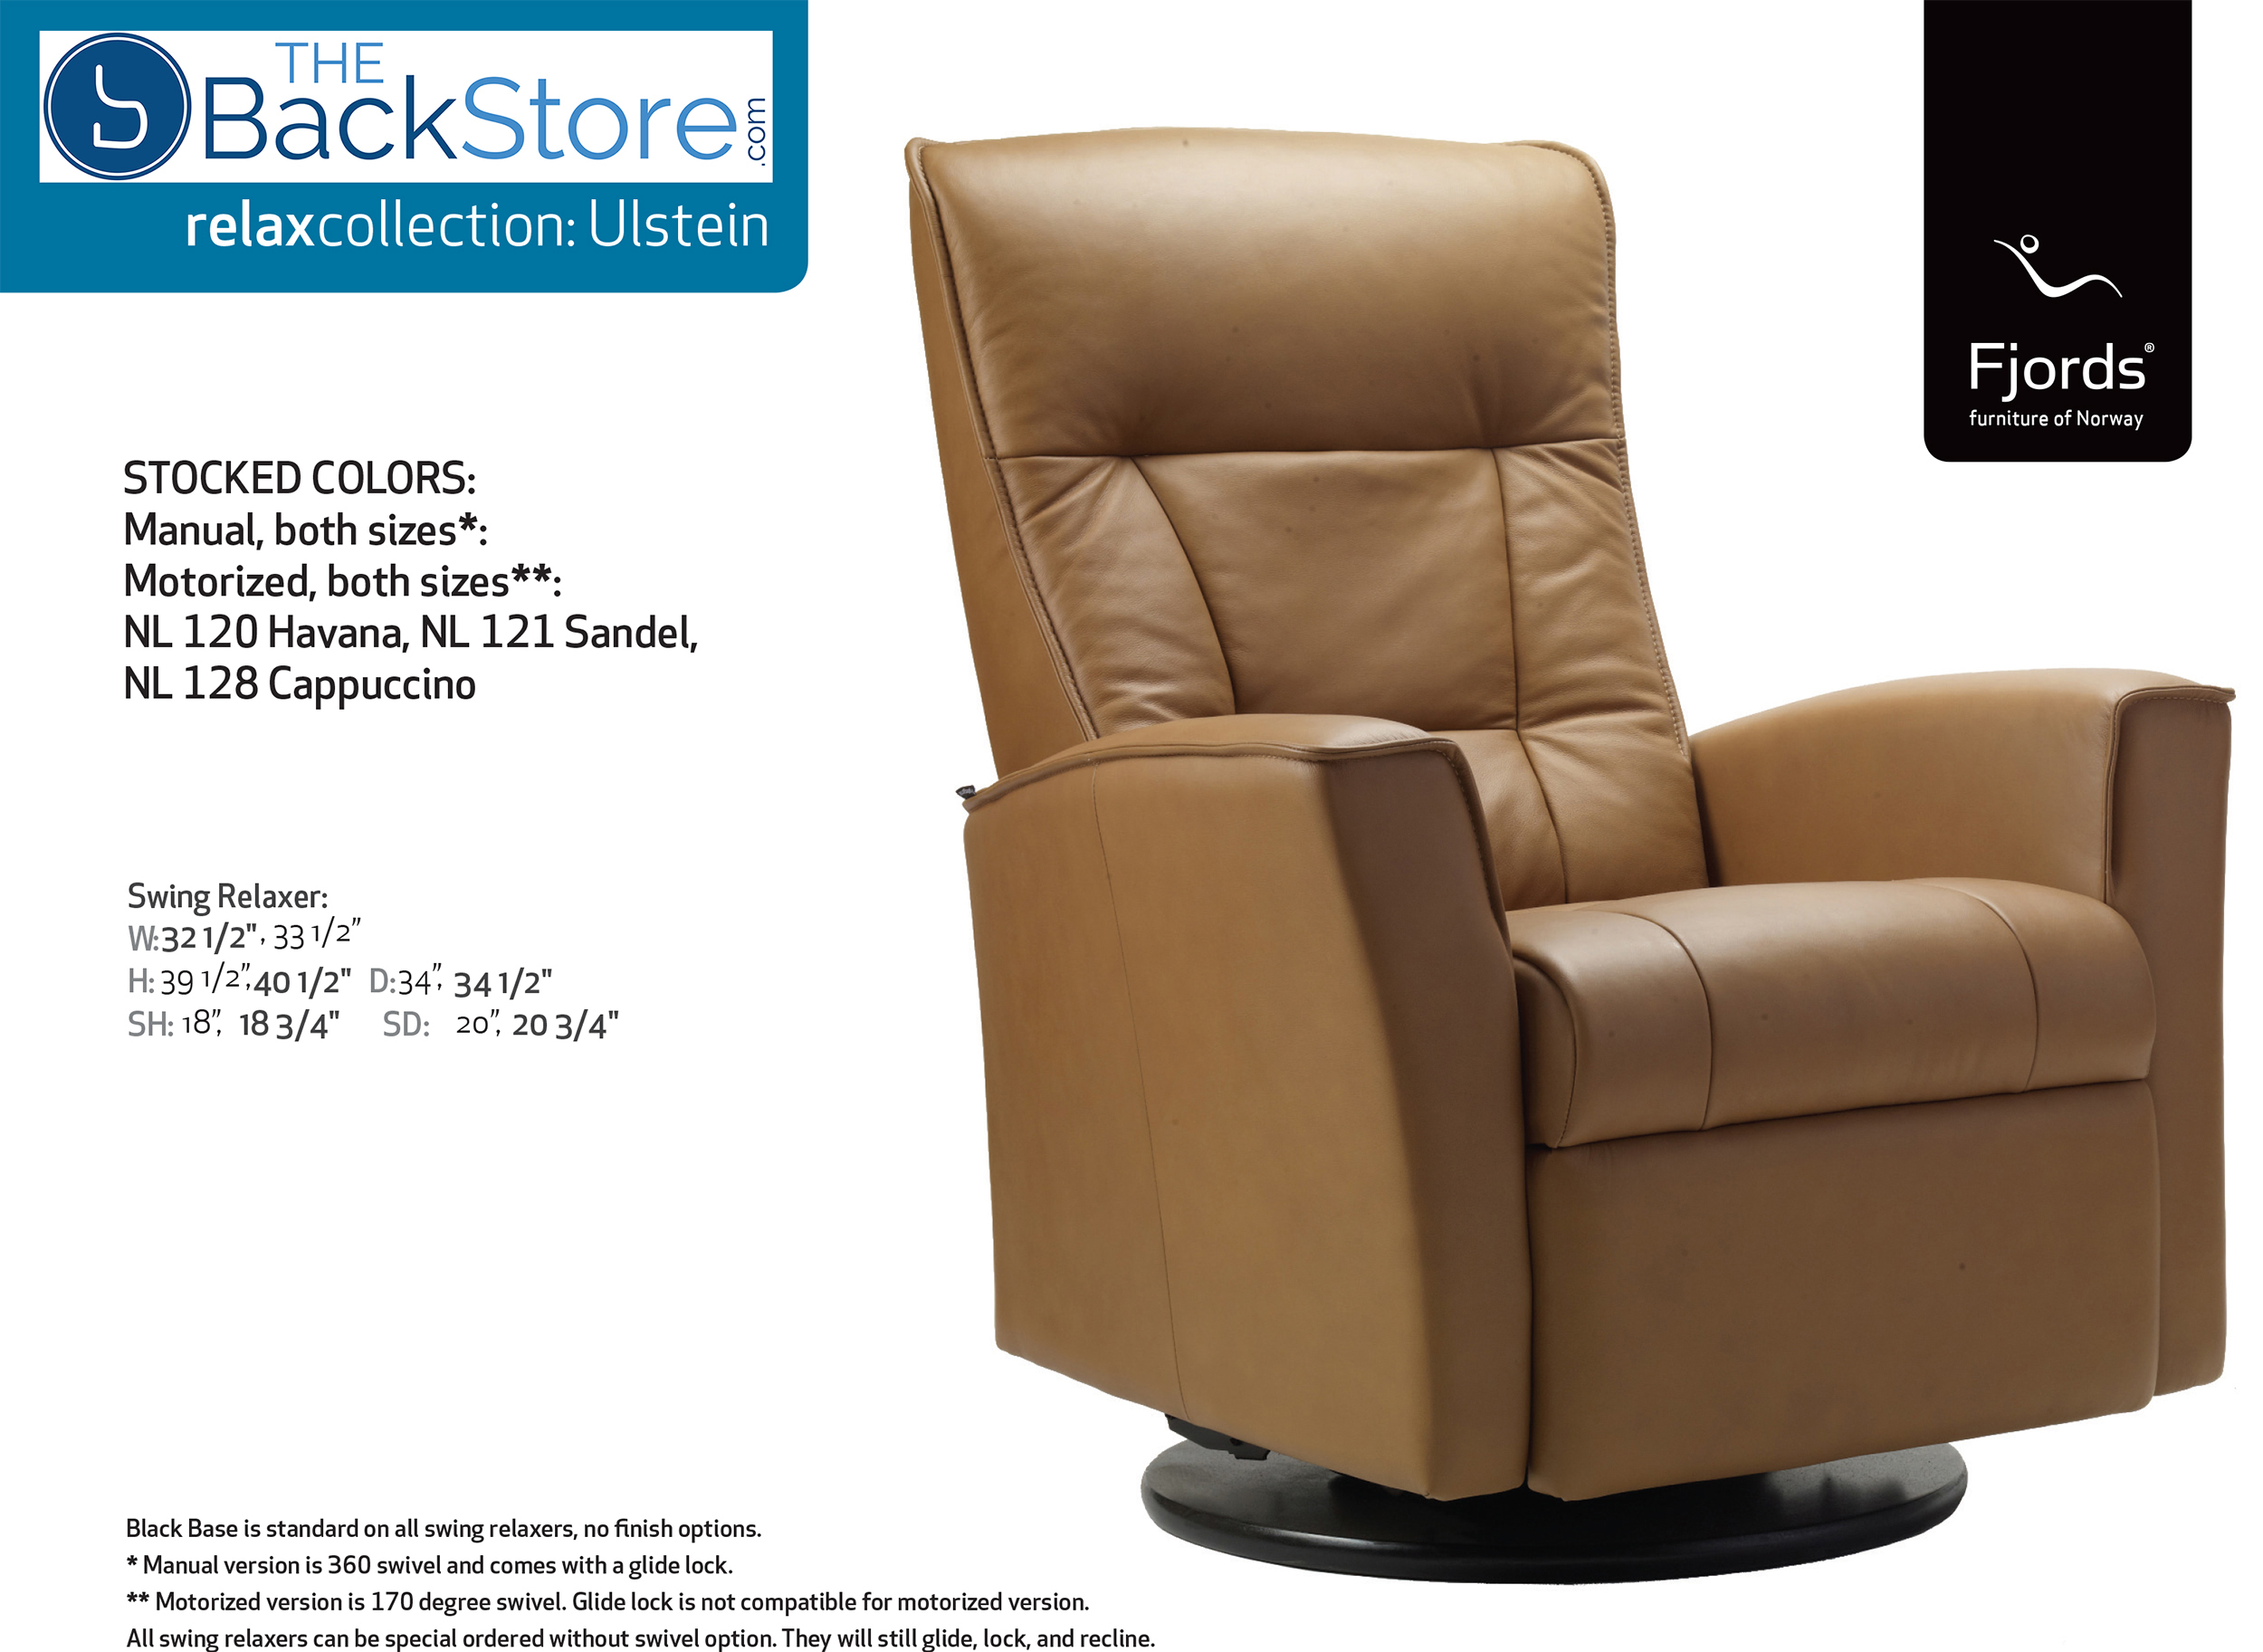 electric power sandel swing information recliner chair nl fjords leather relaxer ulstein itm